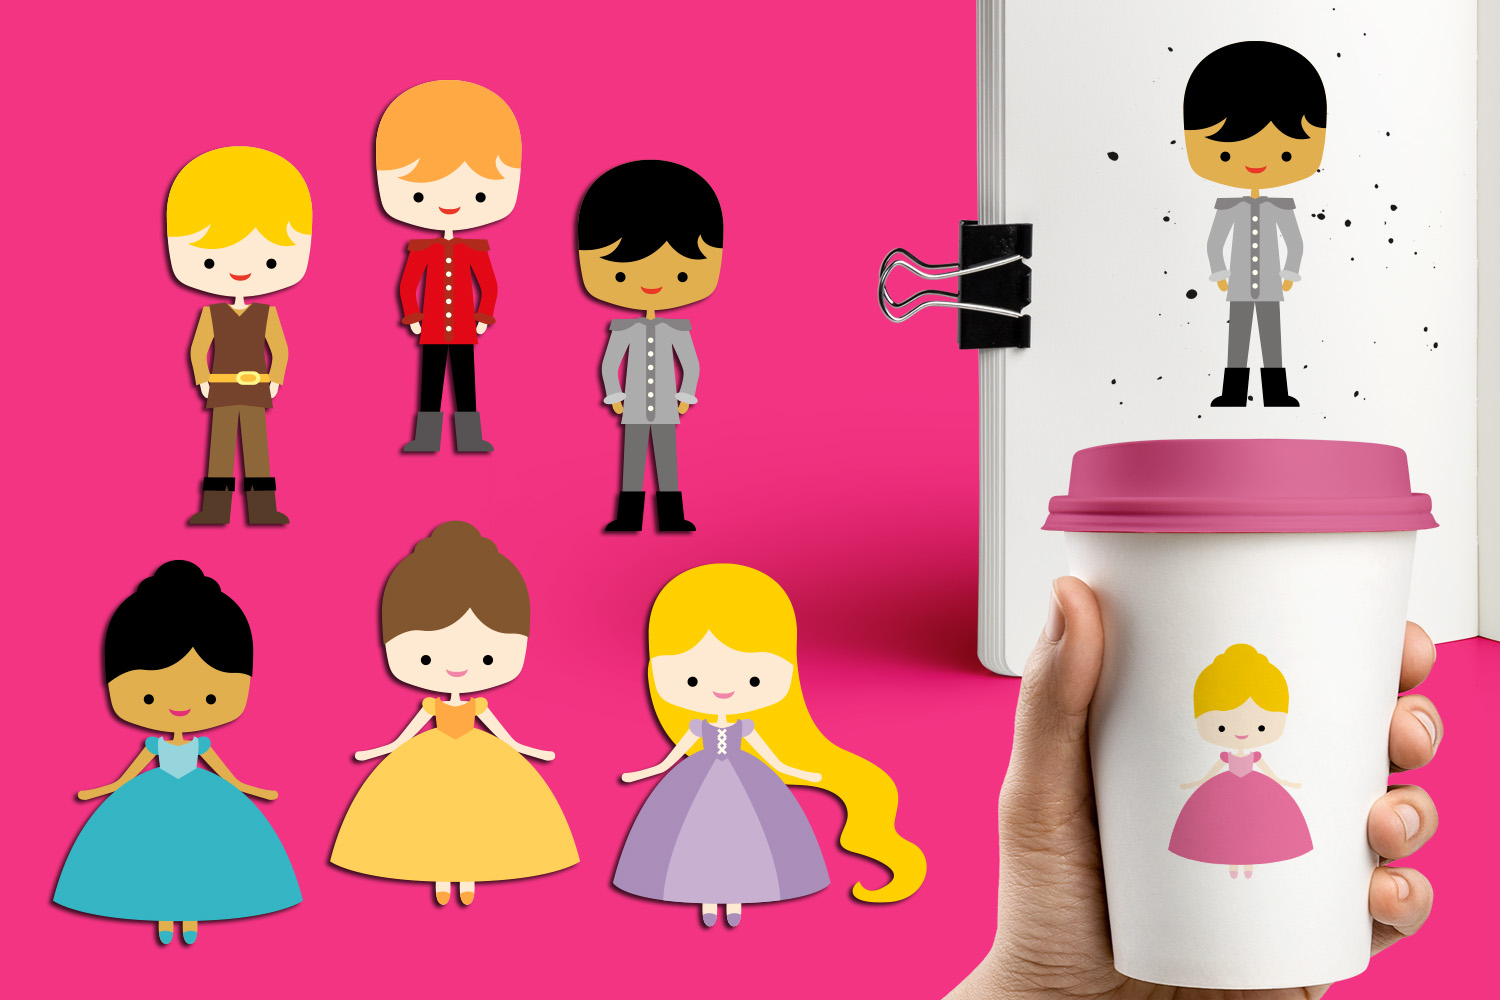 Cute Prince and Princess clipart graphics.